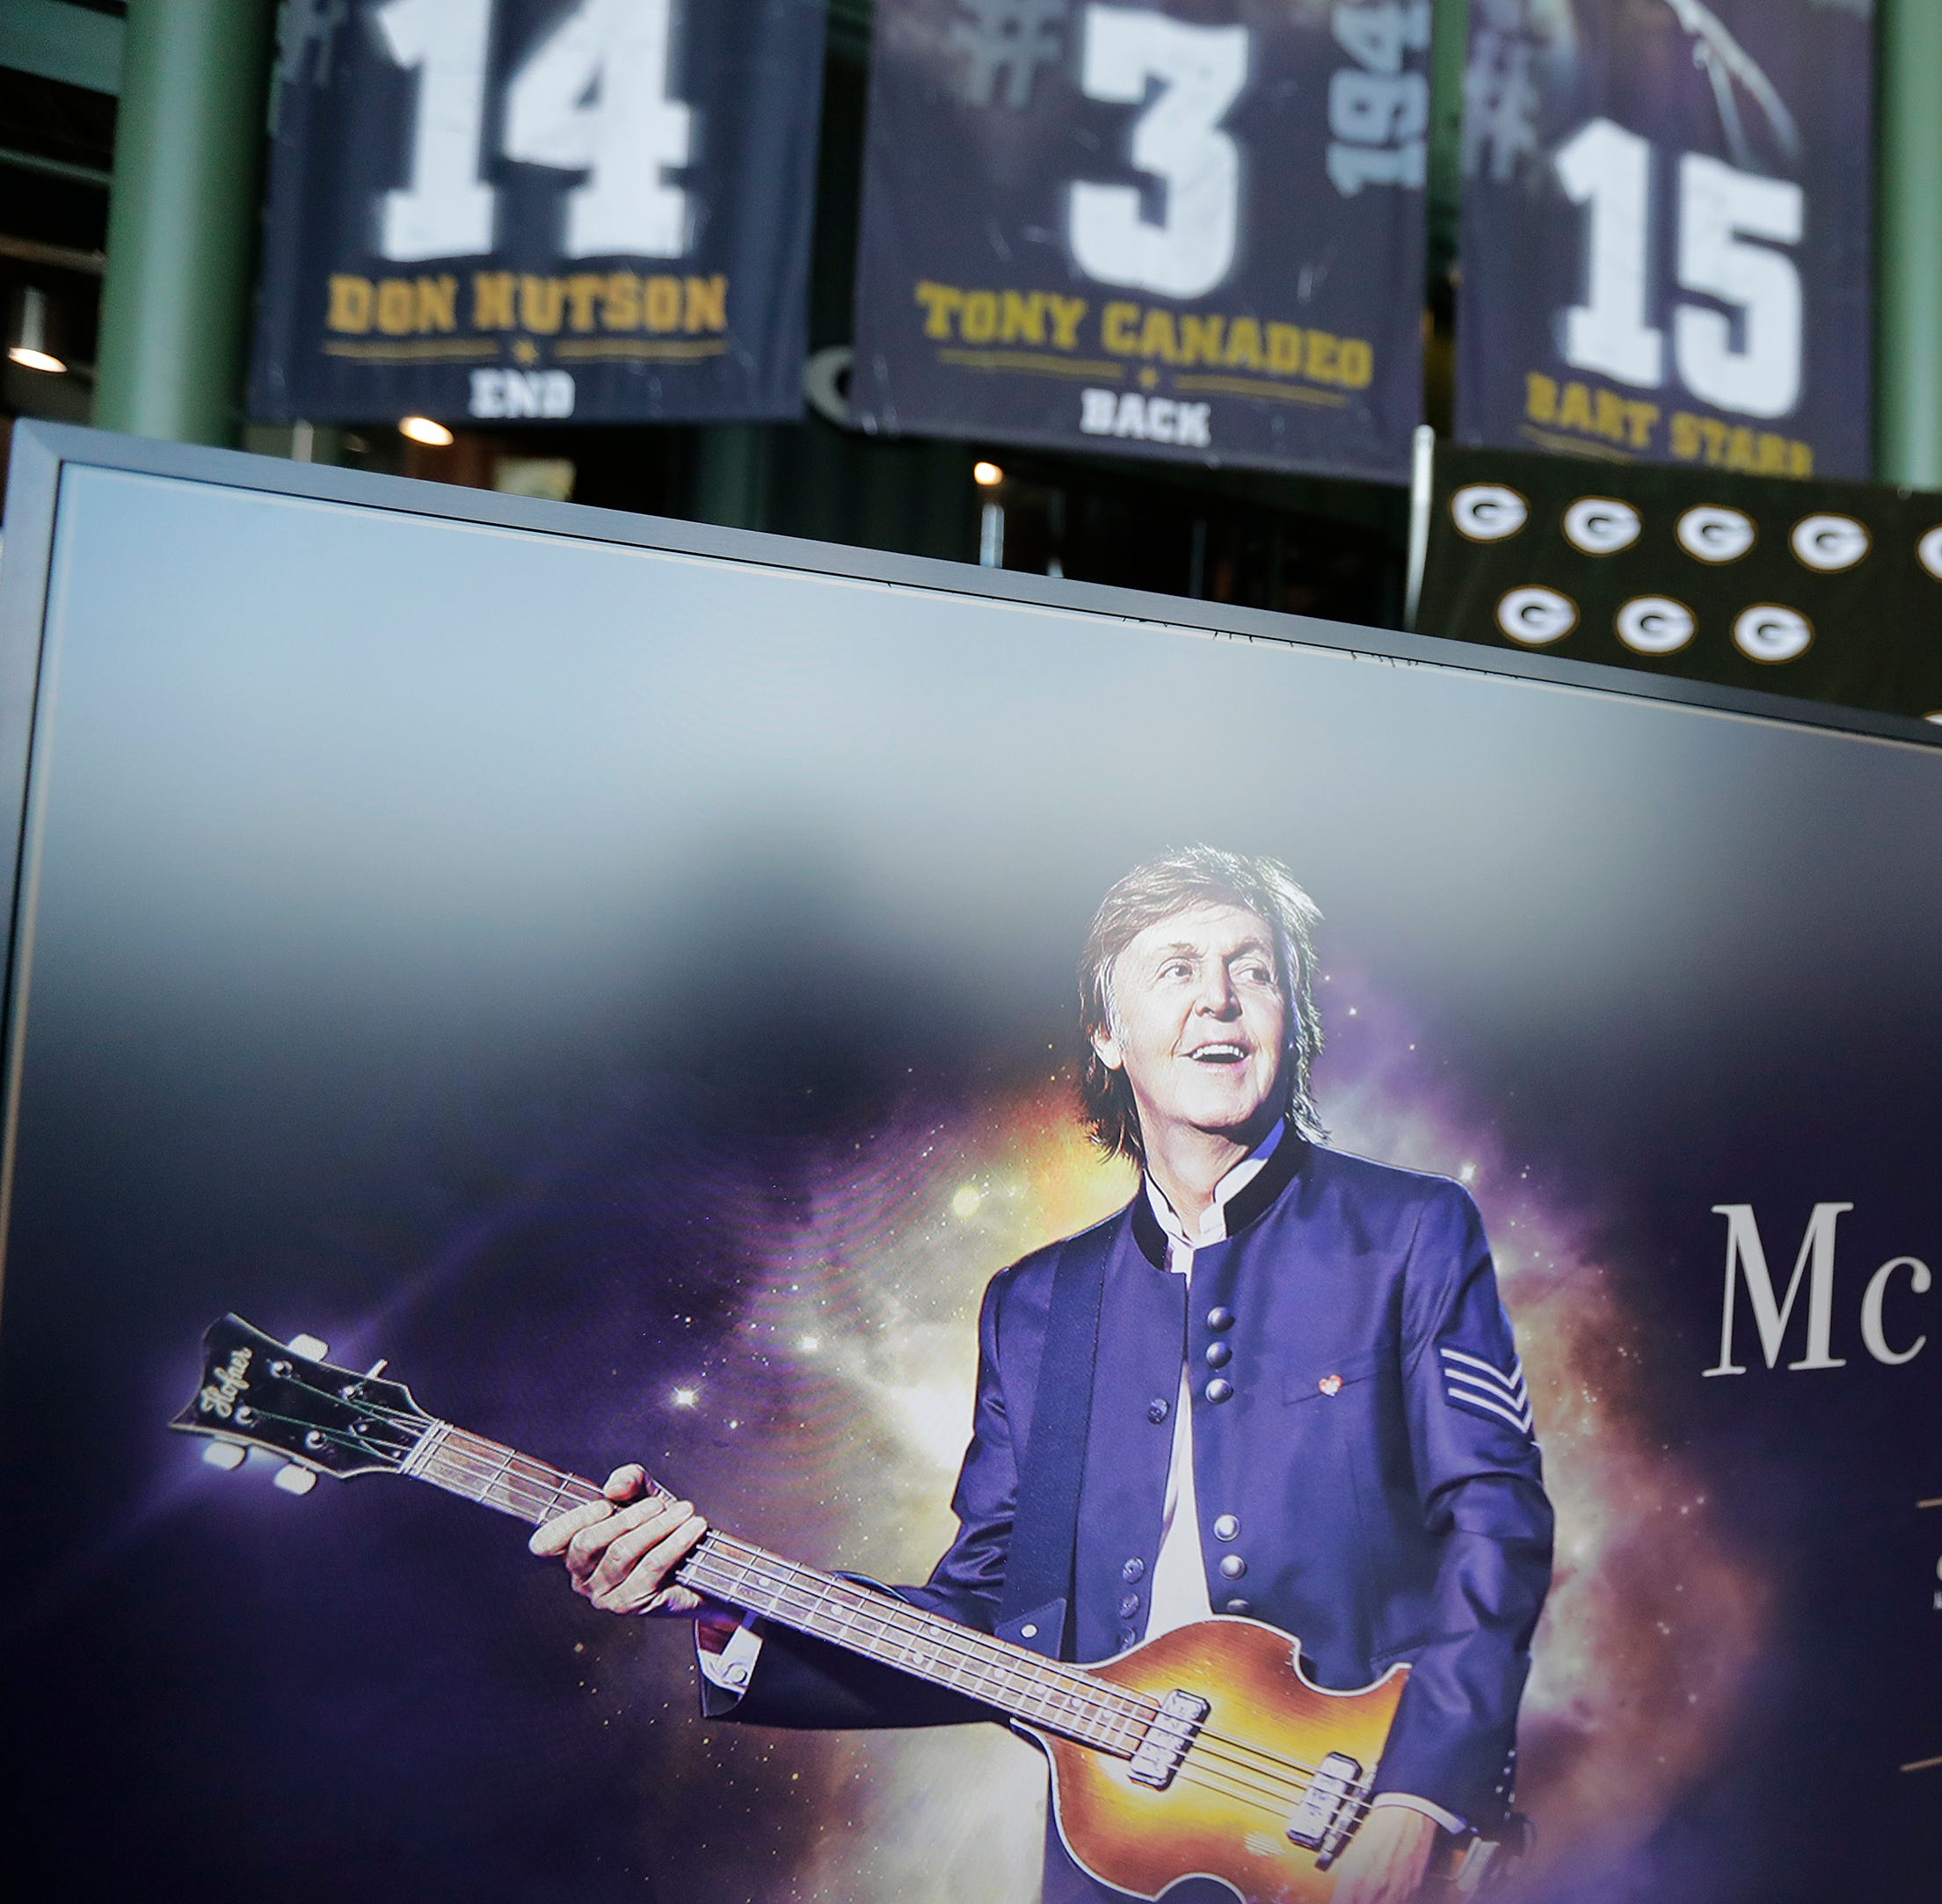 McCartney face-value tickets are gone, but secondary market prices start at $87